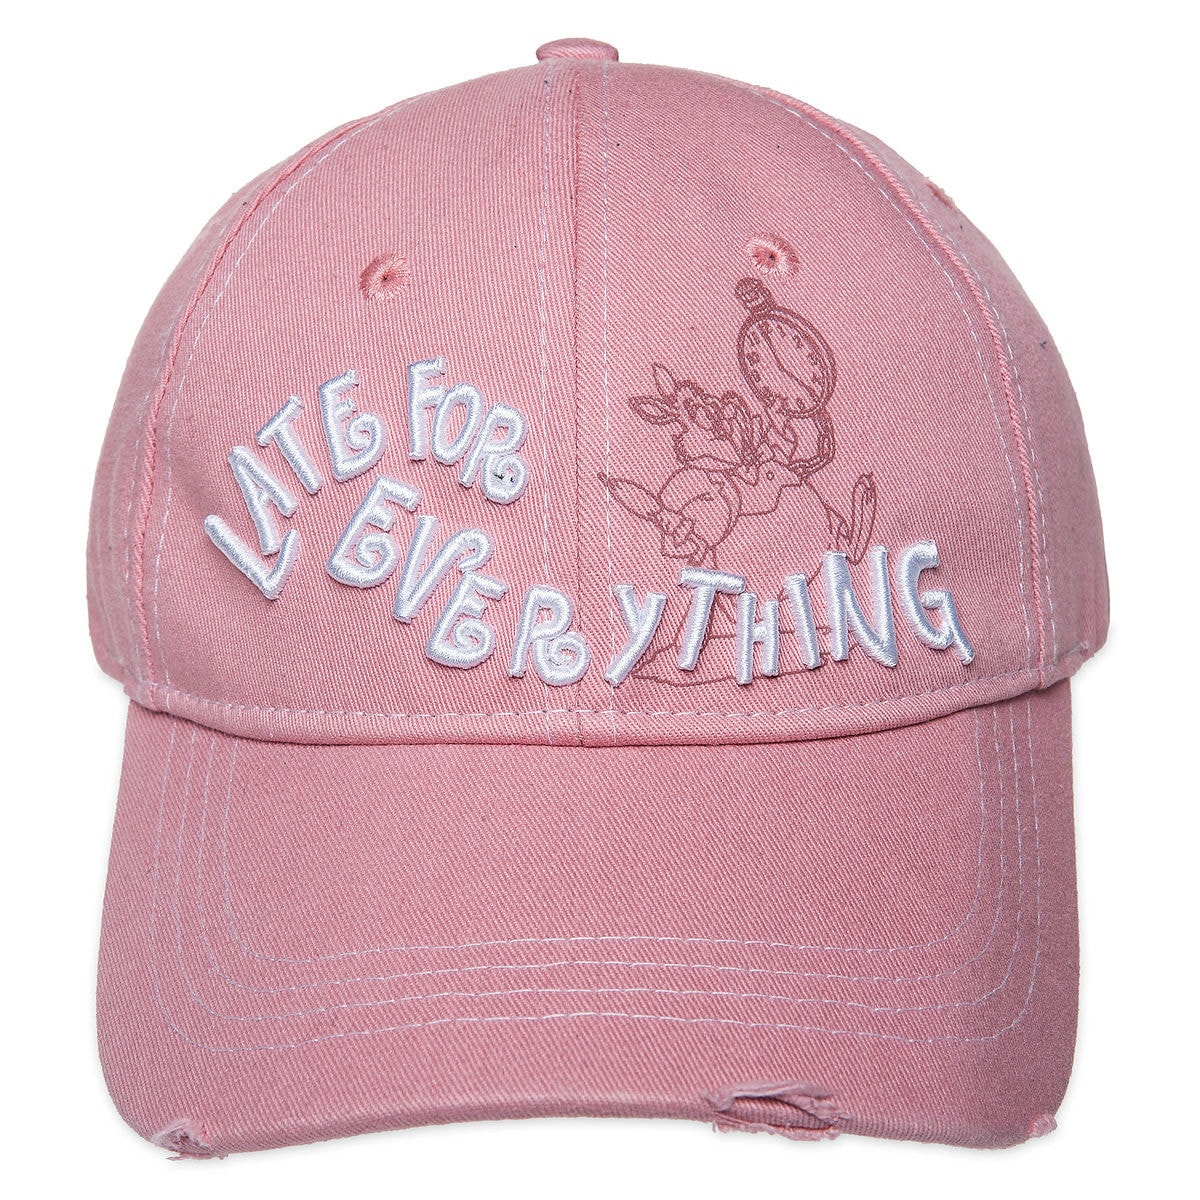 a0c5f4d7a68 Product Image of White Rabbit   Late For Everything   Baseball Cap for  Adults